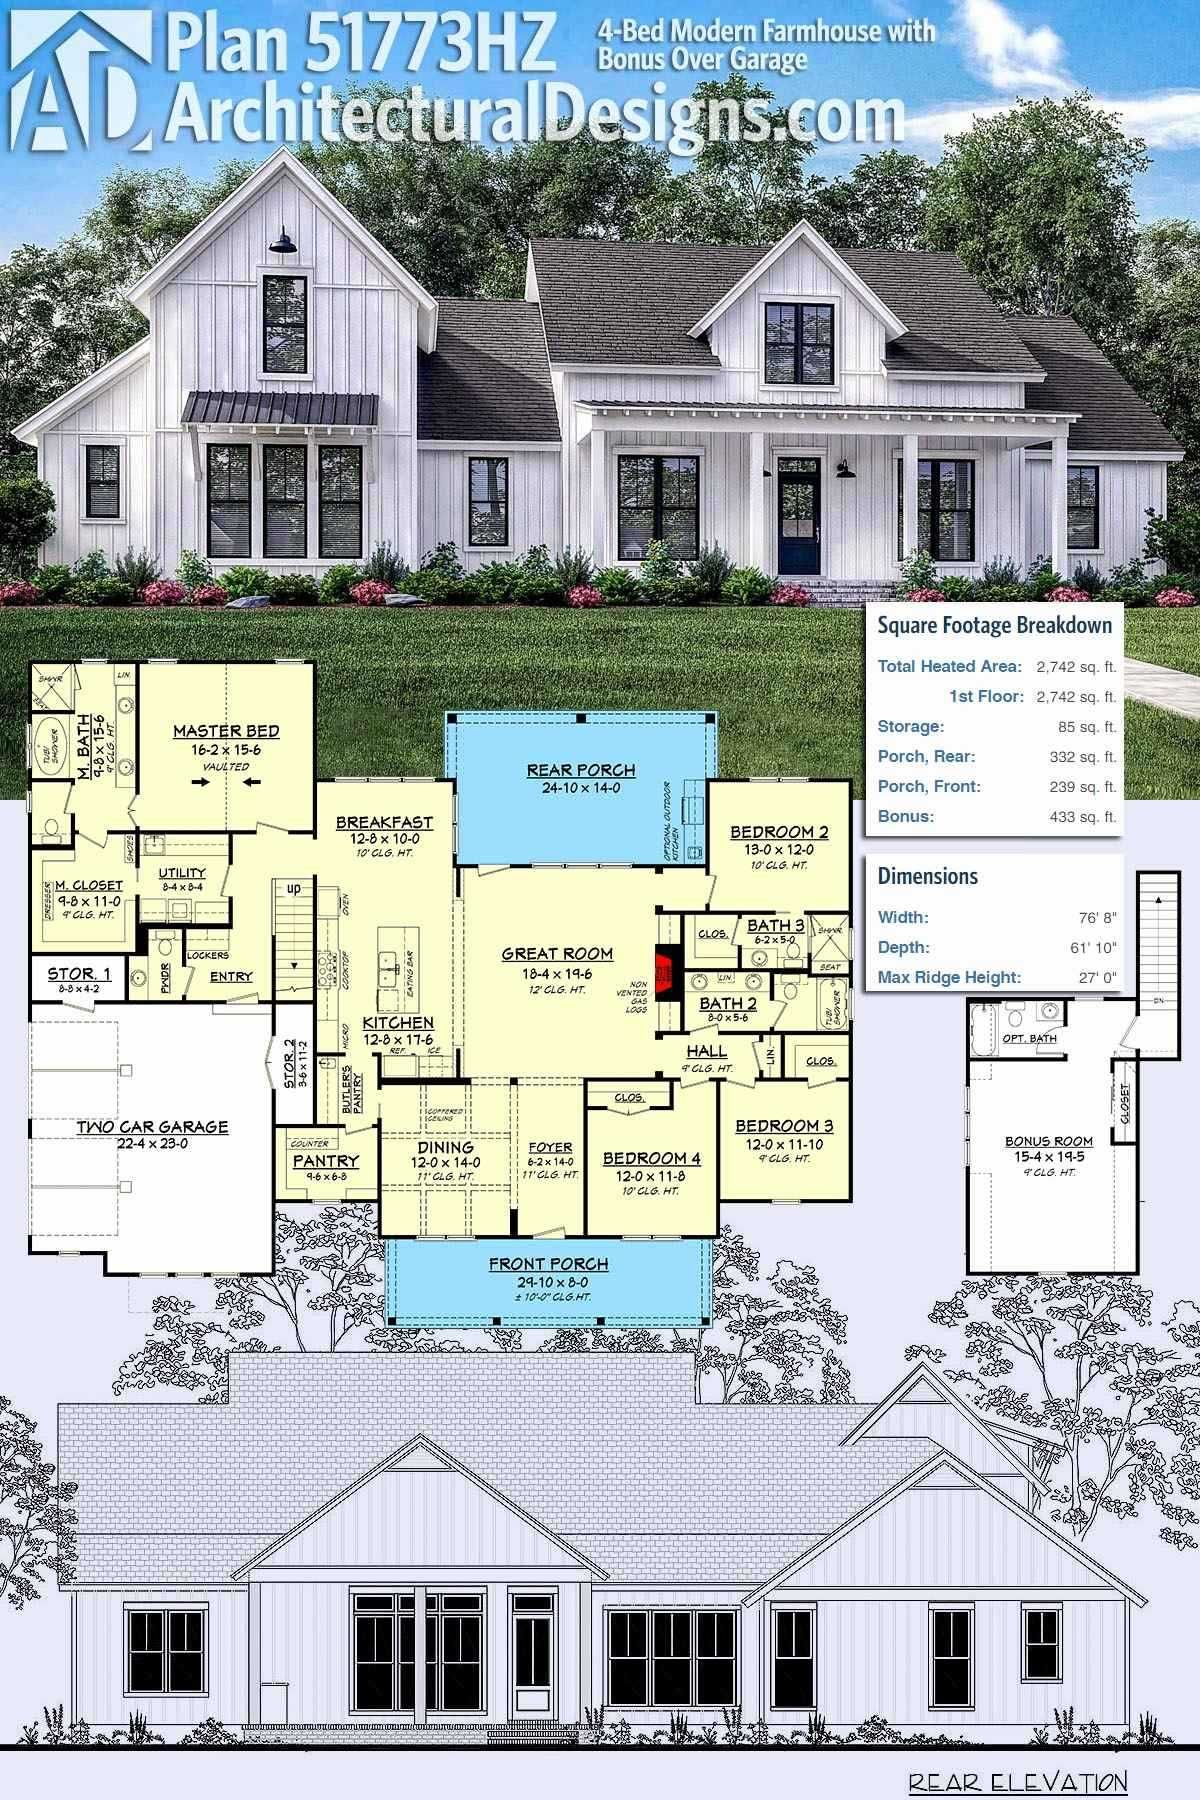 Single Story Contemporary Farmhouse Fresh Modern Farmhouse Floor Plans Also House Plan Modern Farmhouse Plans Modern Farmhouse Floorplan Farmhouse Floor Plans